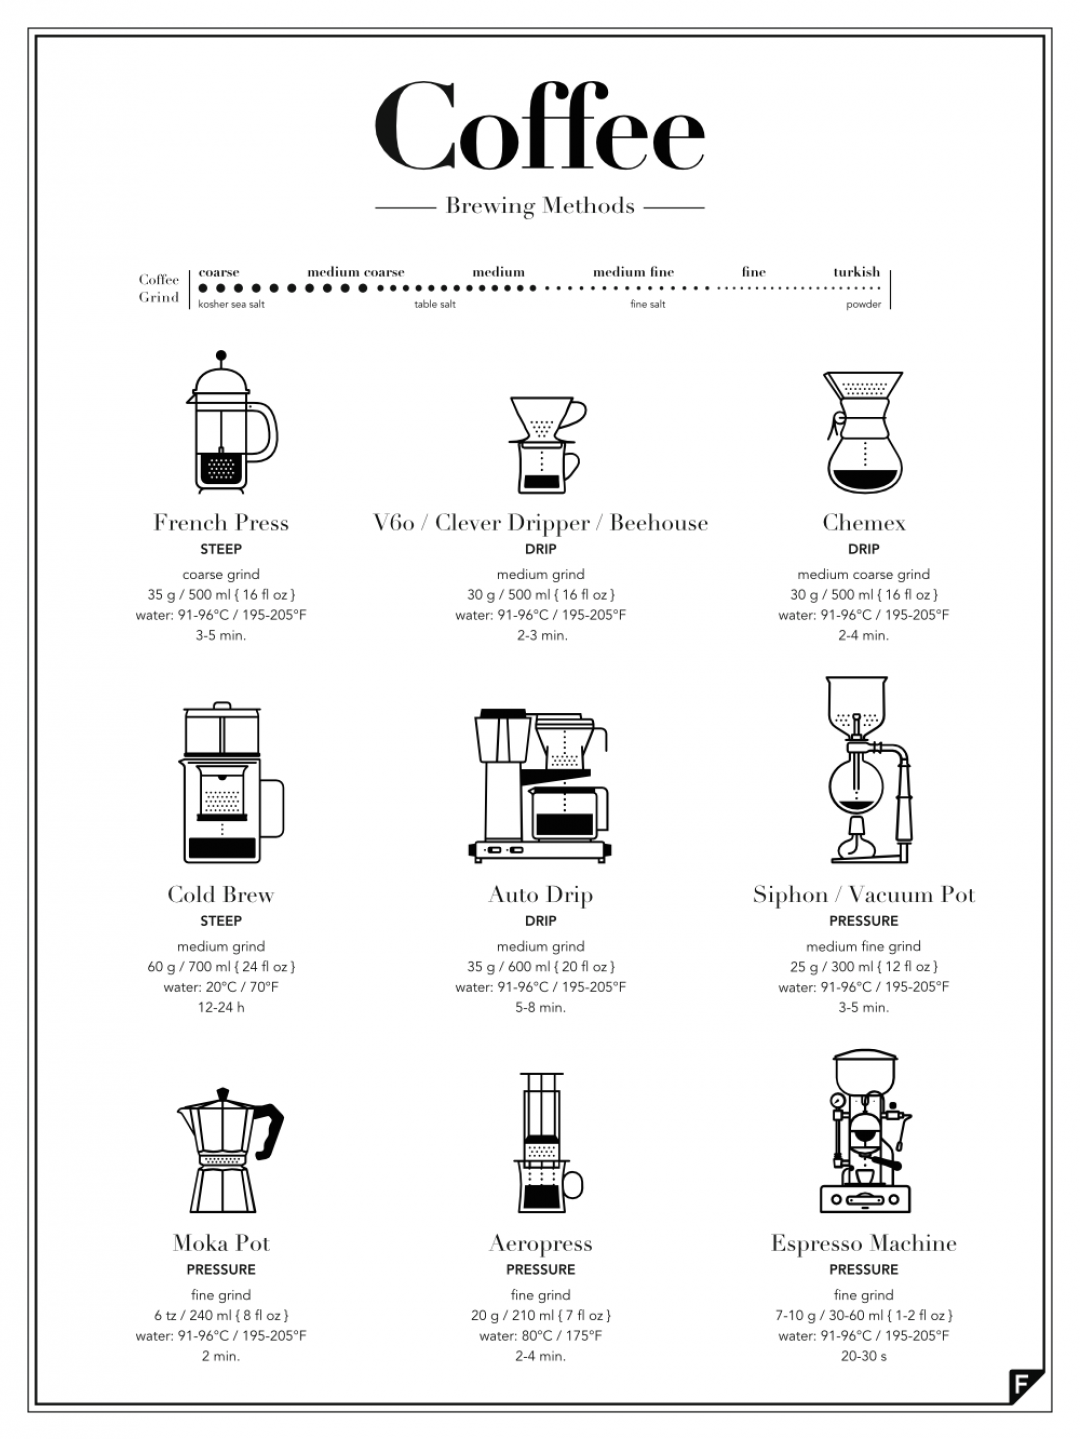 Here's an interesting graphic of different coffee making methods